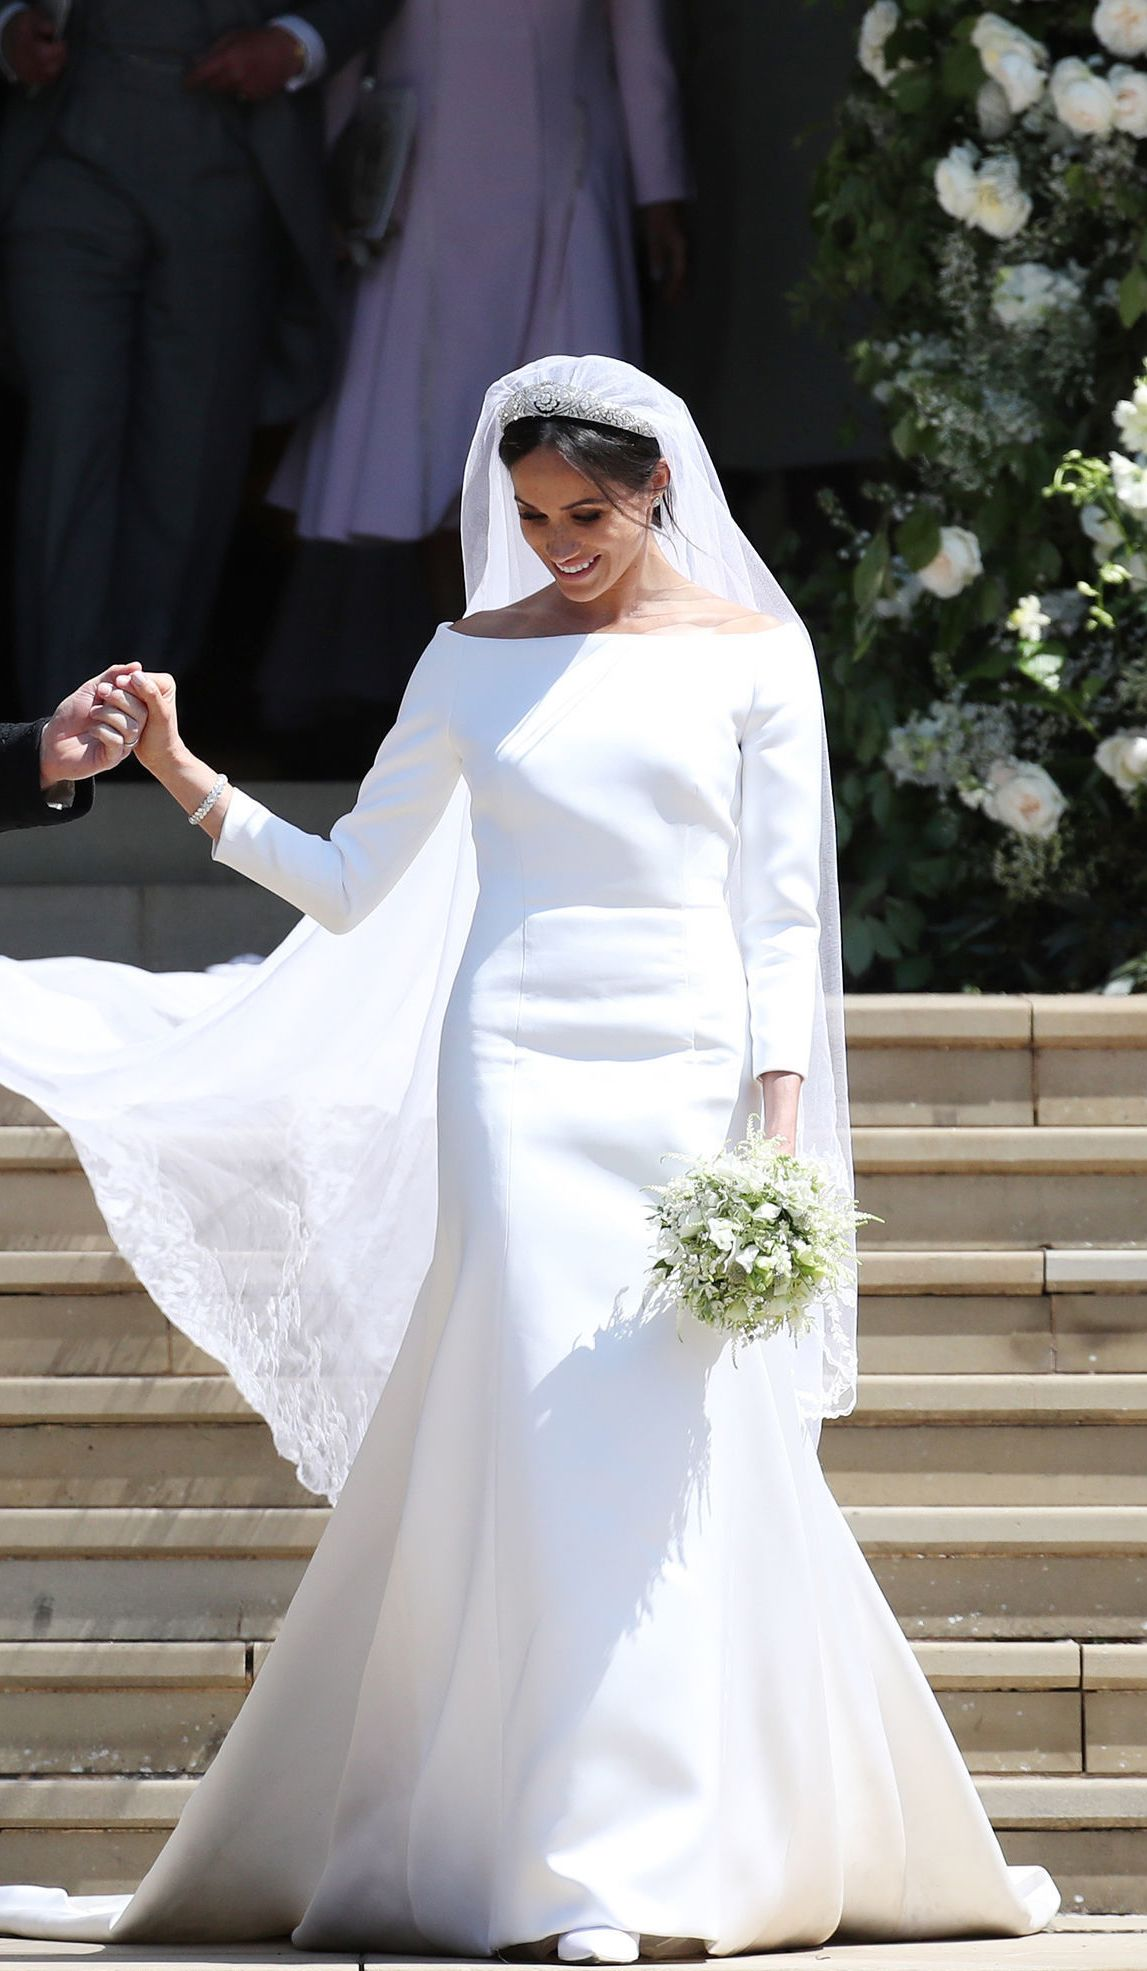 See How Meghan S Dress Compares To Royal Brides Of The Past Meghanmarkle Royalwedding W Royal Wedding Gowns Meghan Markle Wedding Dress Royal Wedding Dress